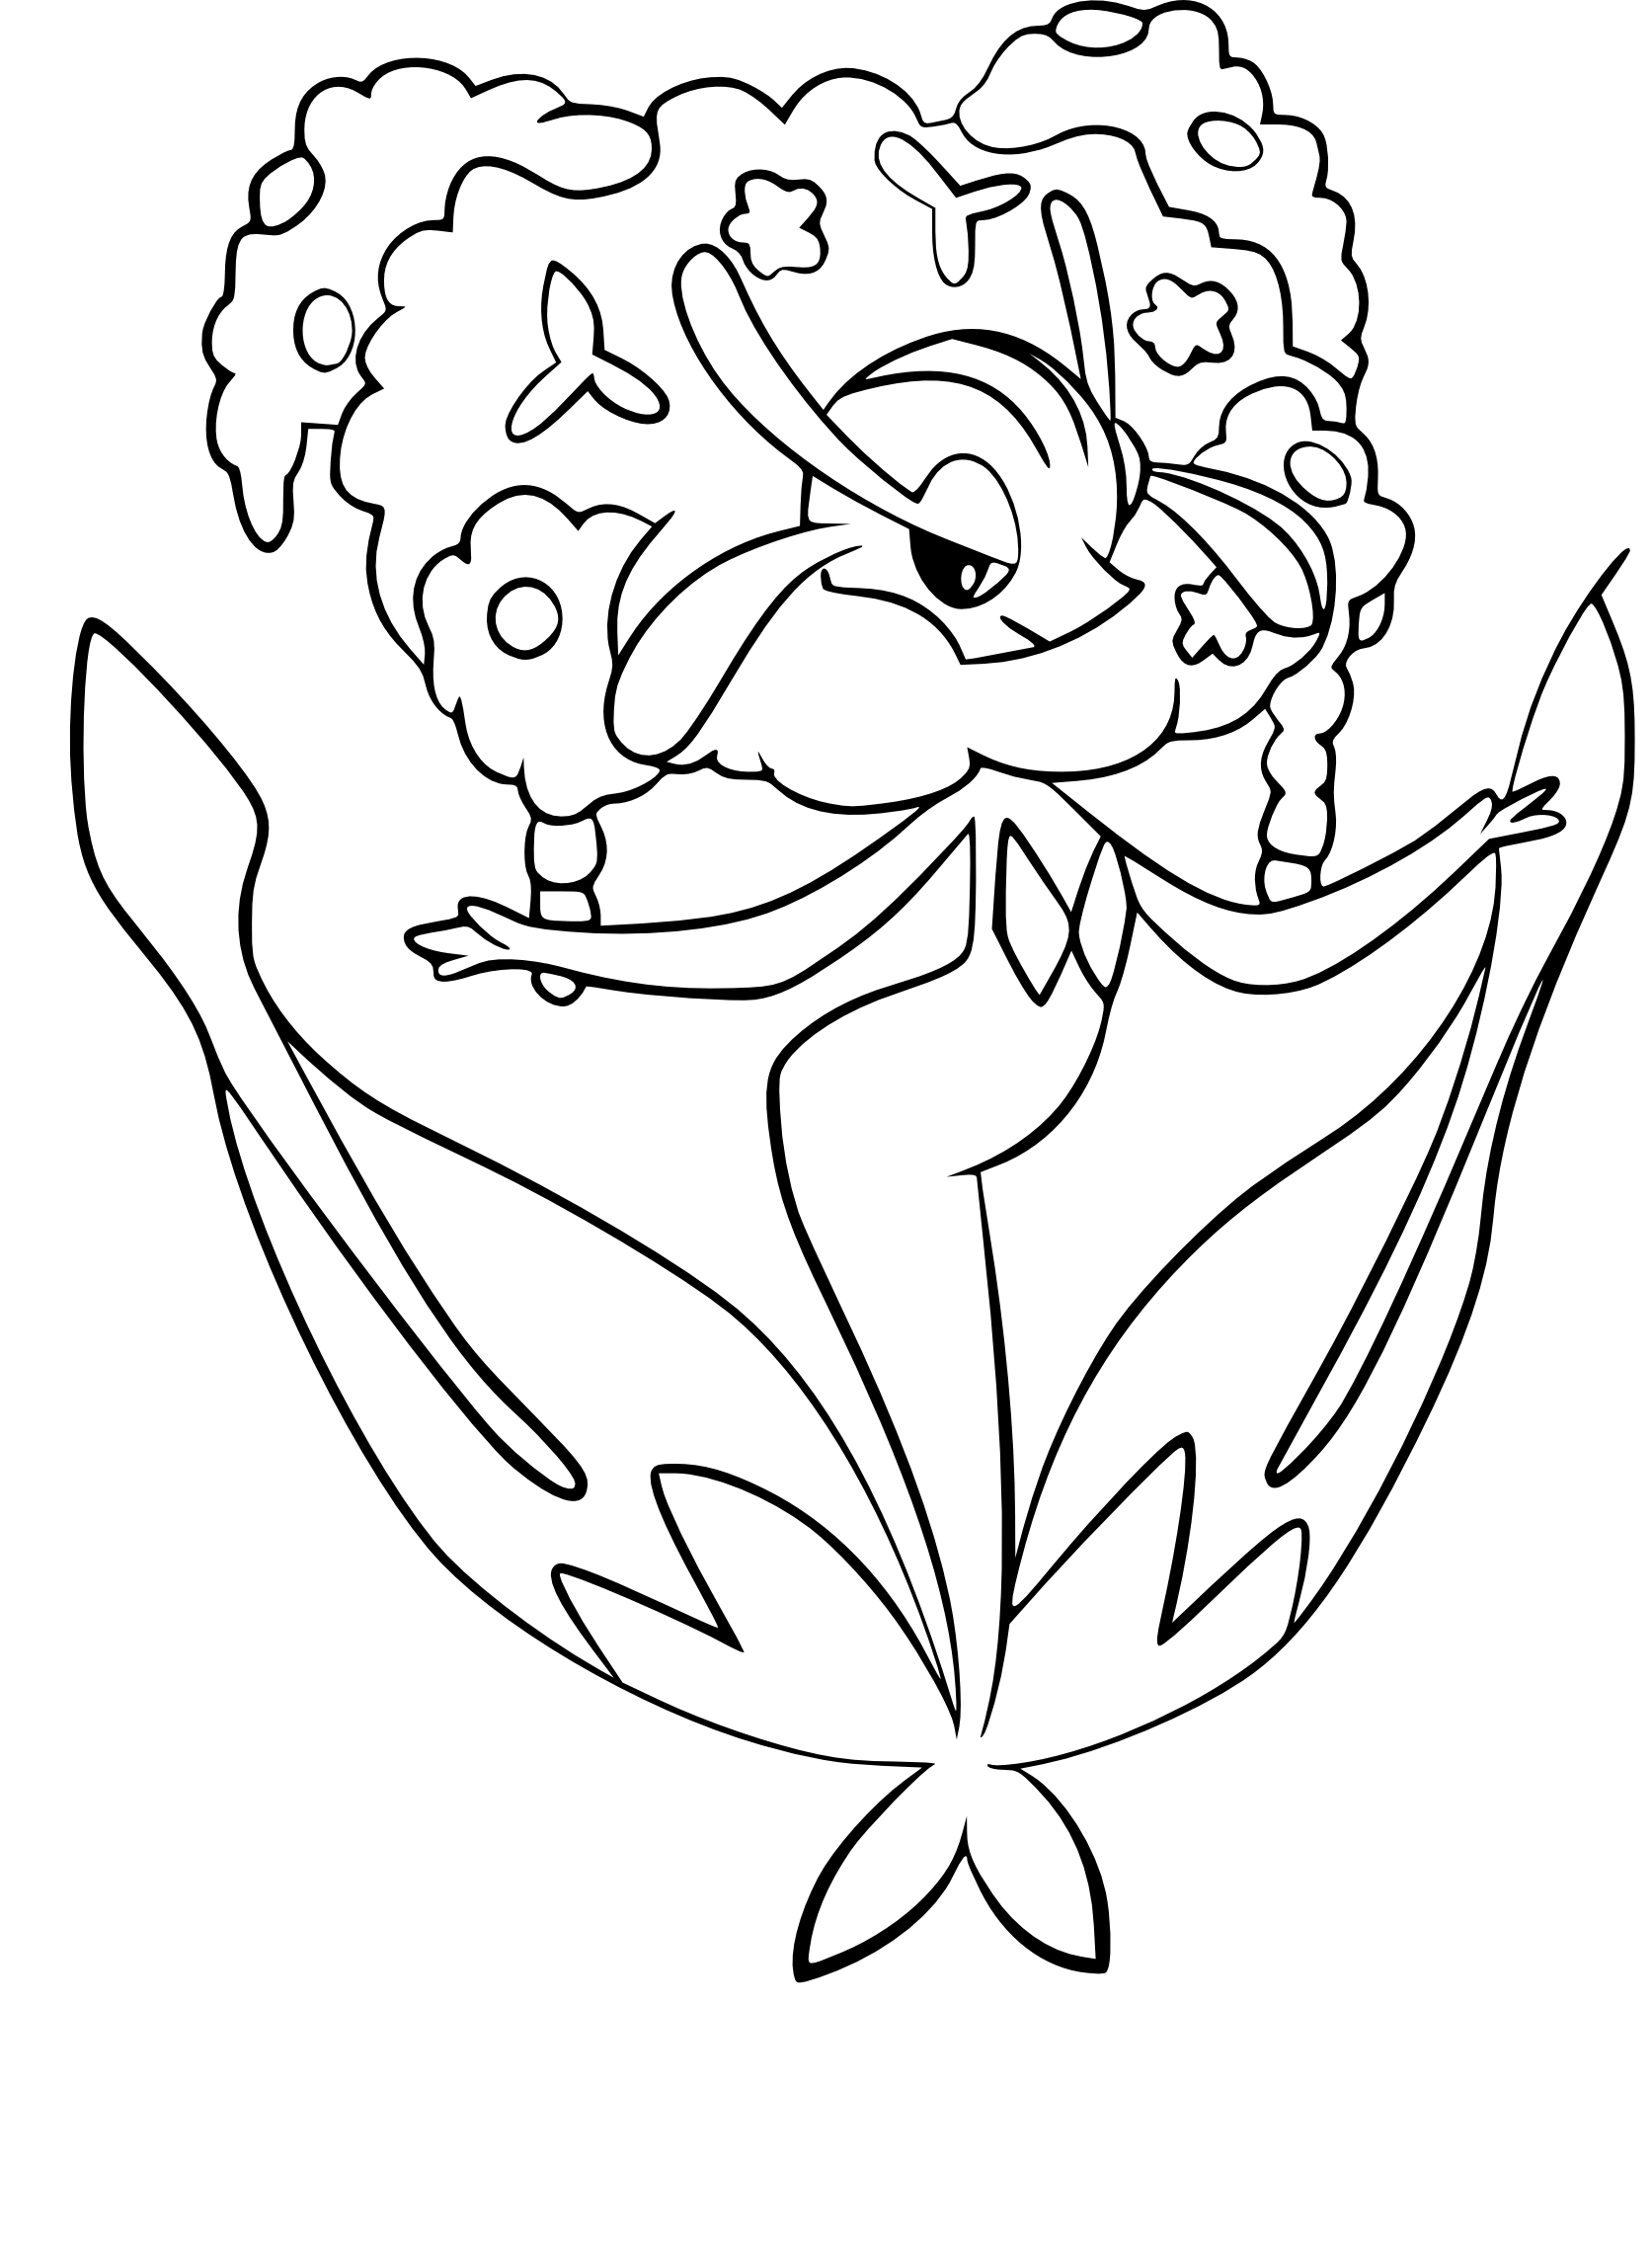 pokemon coloring pages flabebe flower - photo#31